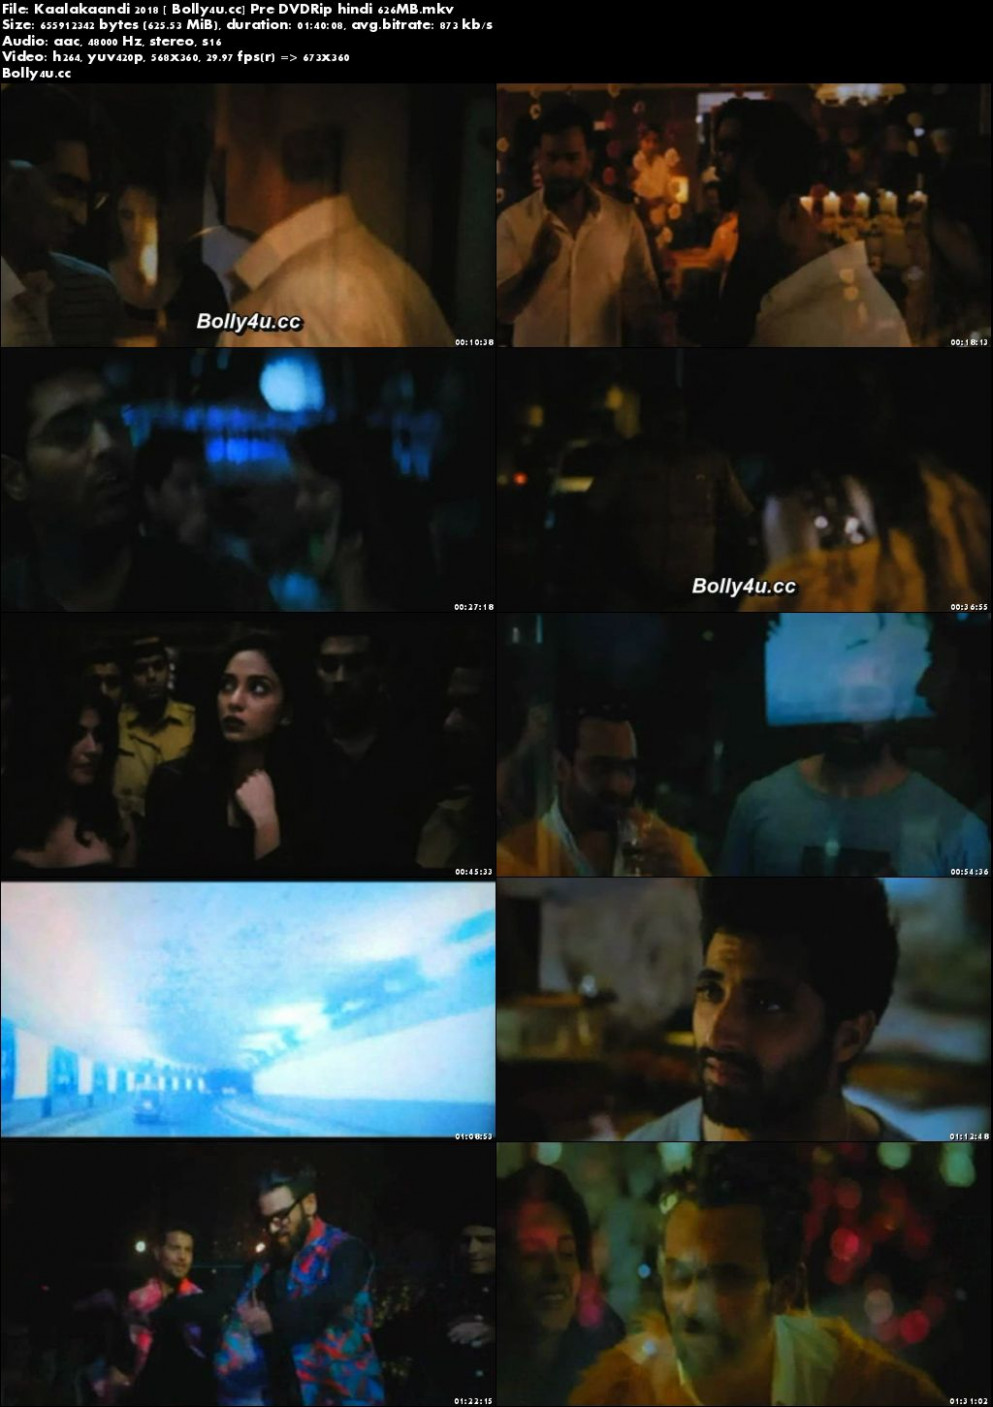 Kaalakaandi 2018 Pre DVDRip Full Hindi Movie Download x264